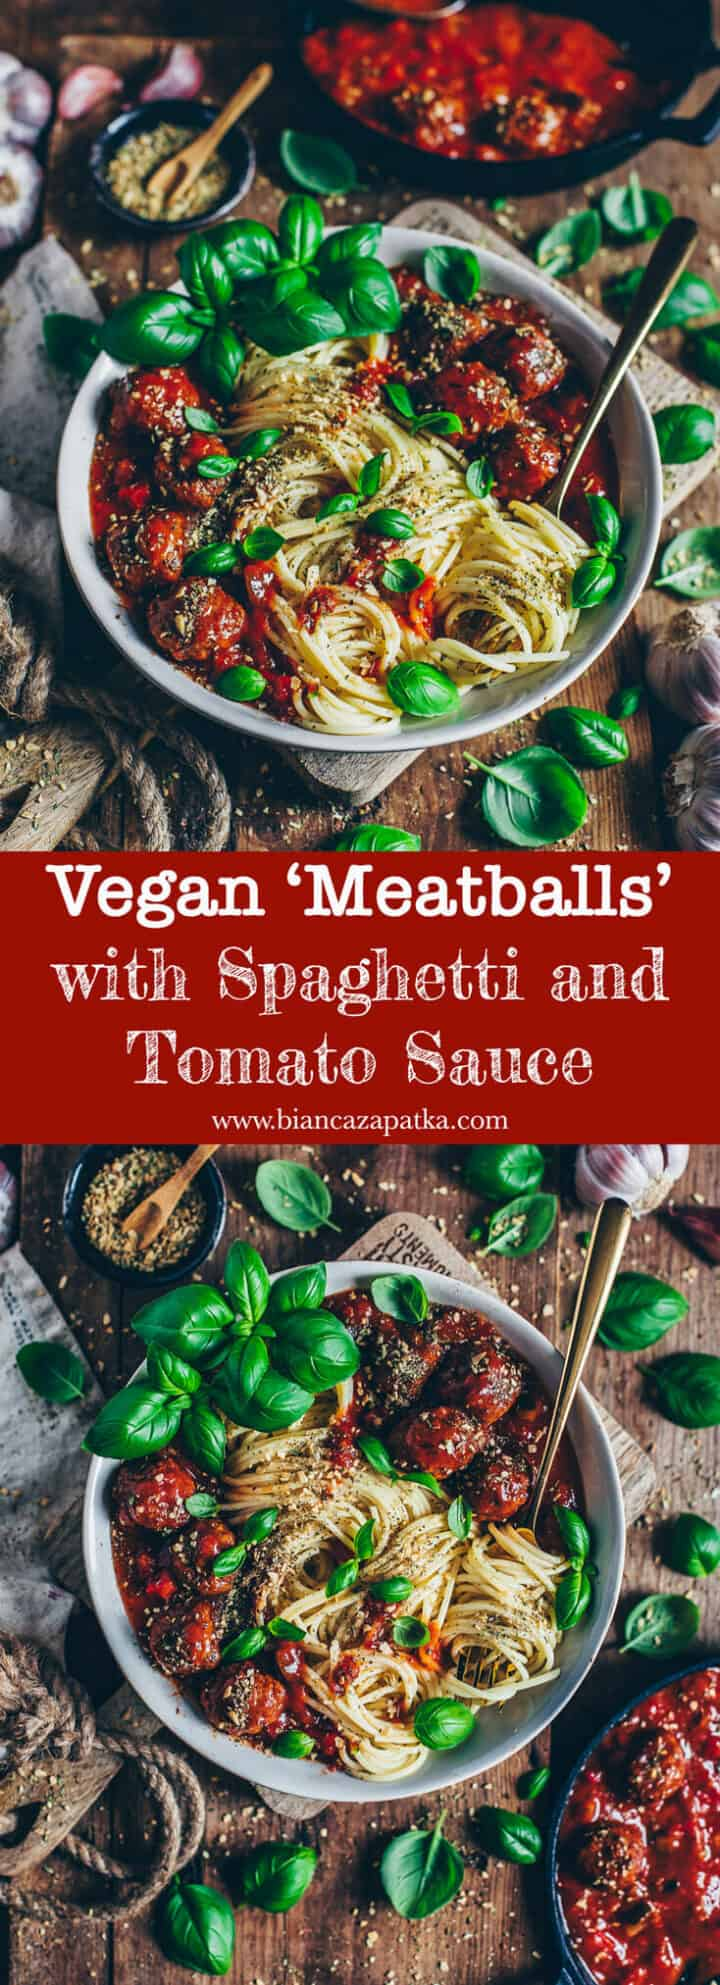 These vegan and healthy 'meatballs' made of beans and combined with a spicy tomato sauce + pasta are a perfect lunch or dinner! This dish is quick & easy to make and a delicious plant-based alternative. Instead of balls, you can also form patties for burger or enjoy them just as a snack.